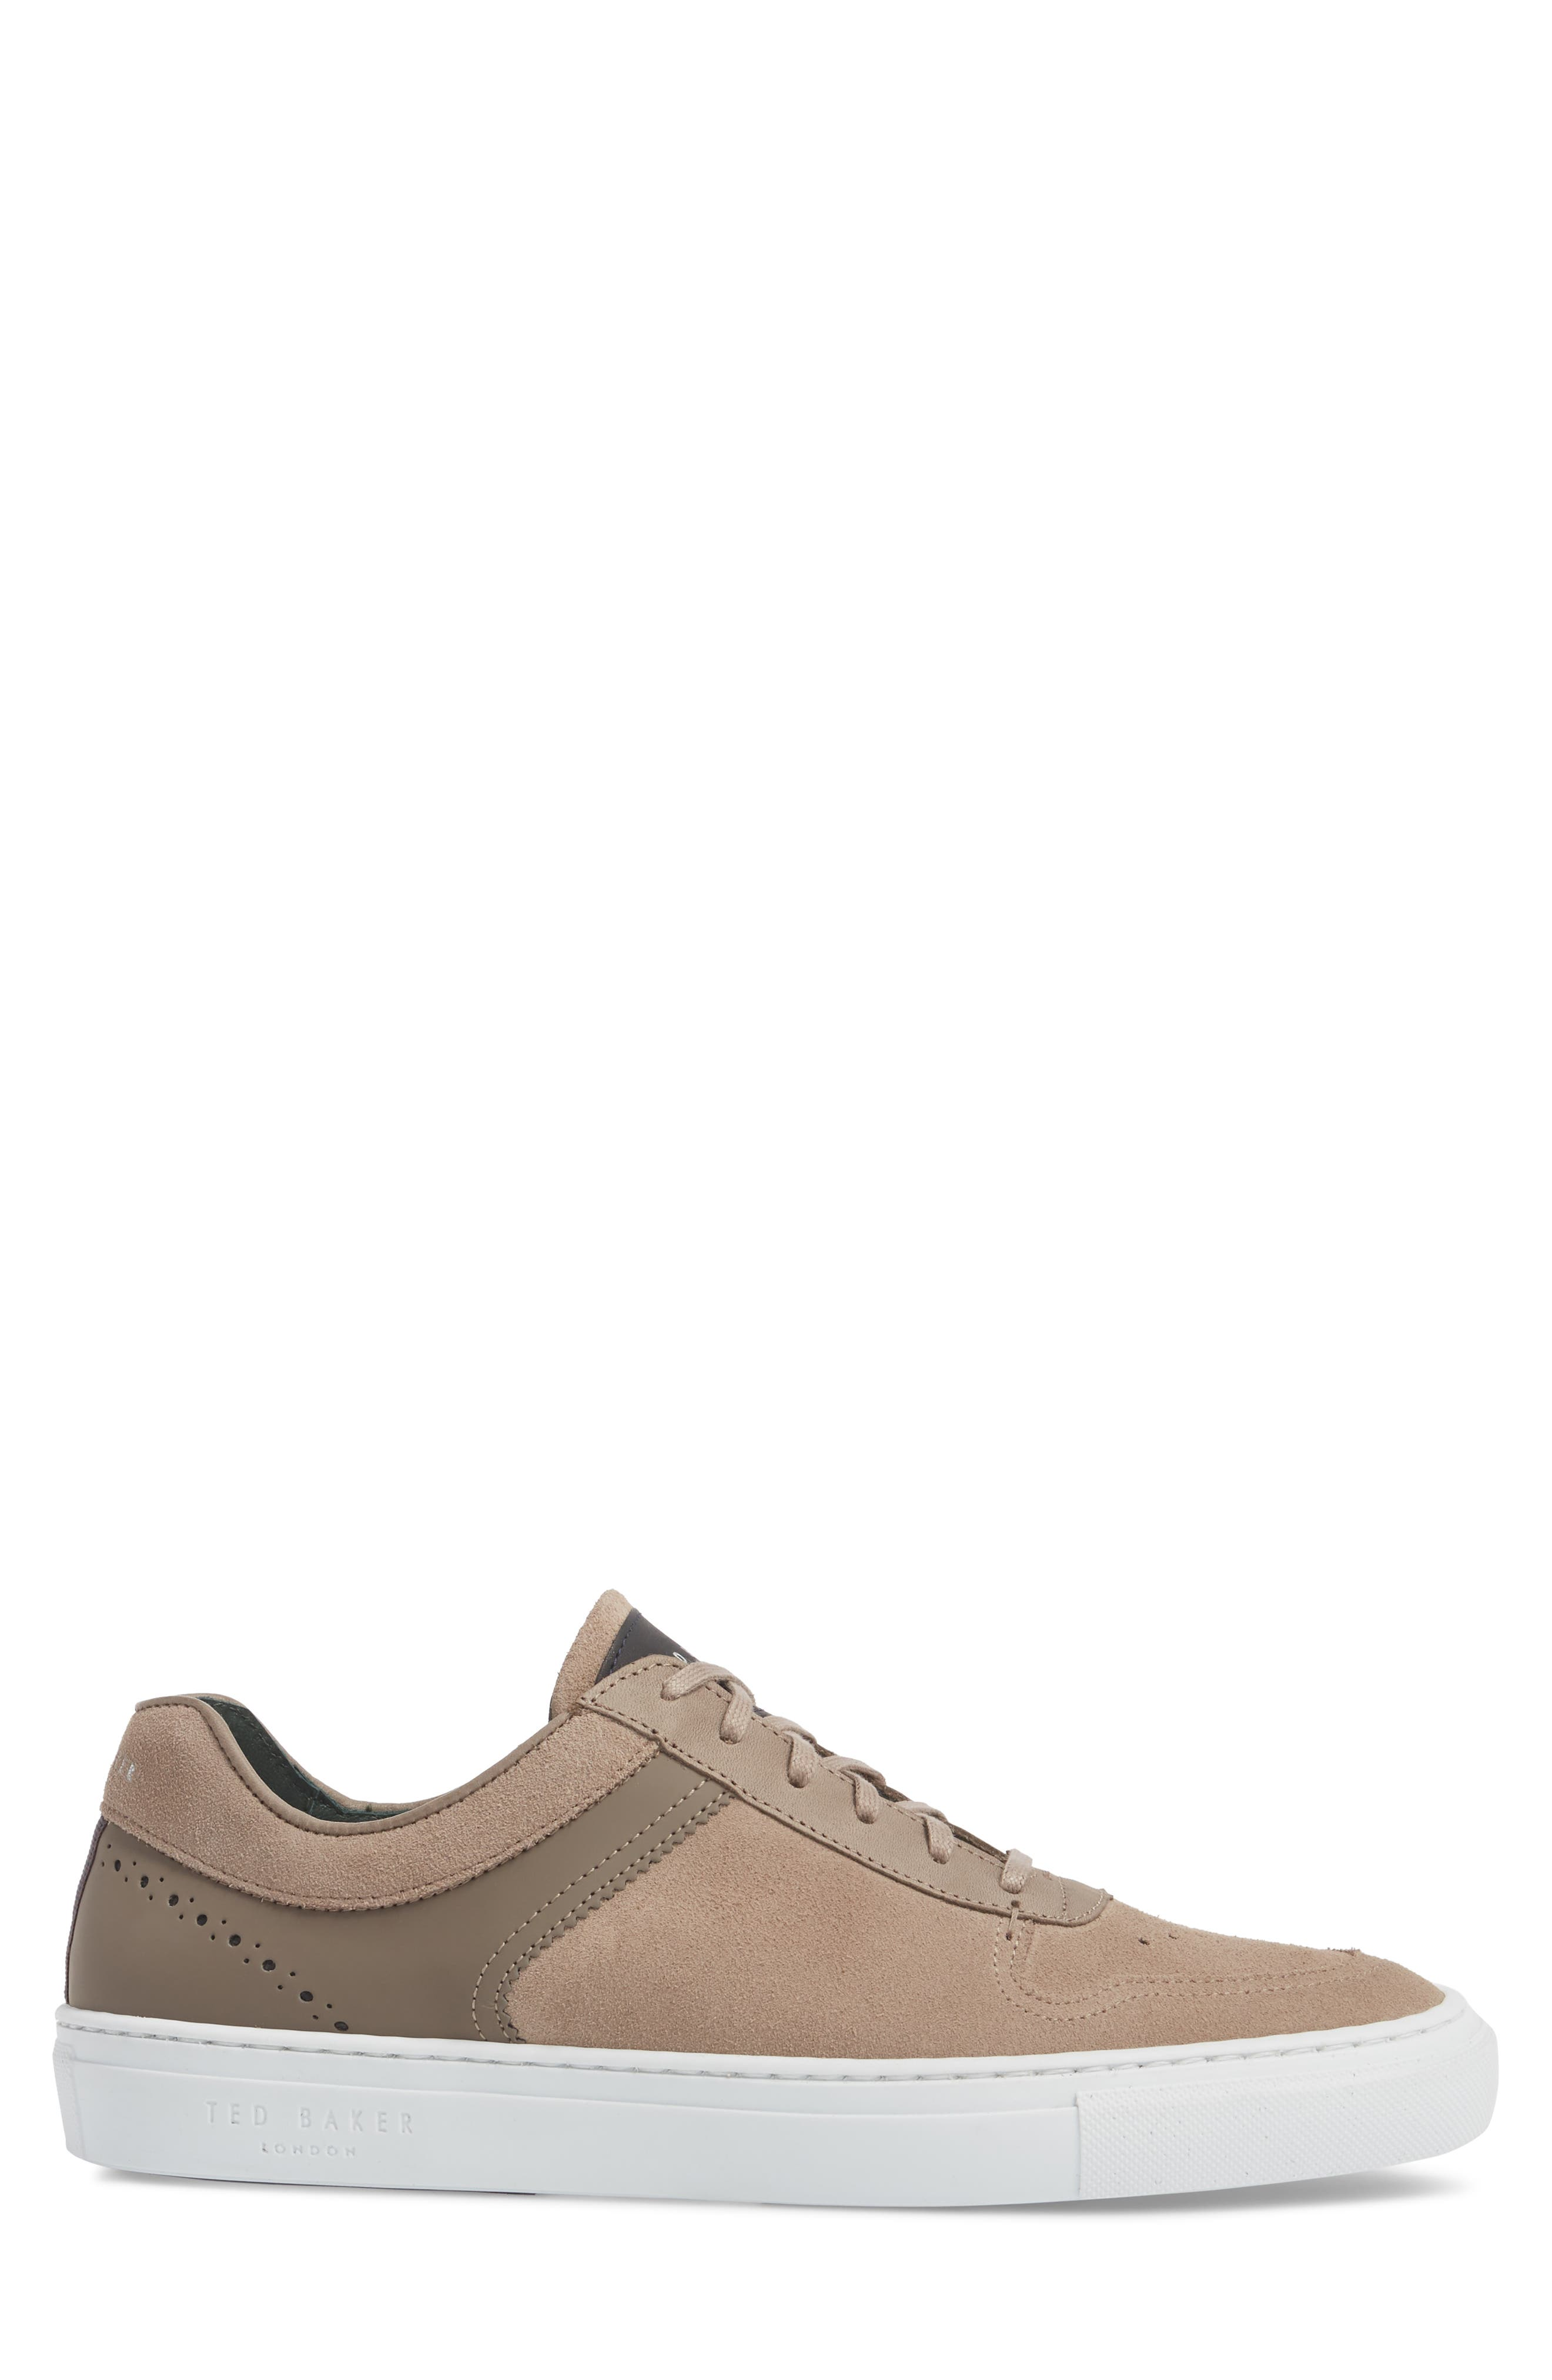 Burall Sneaker,                             Alternate thumbnail 3, color,                             GREY SUEDE/ TEXTILE